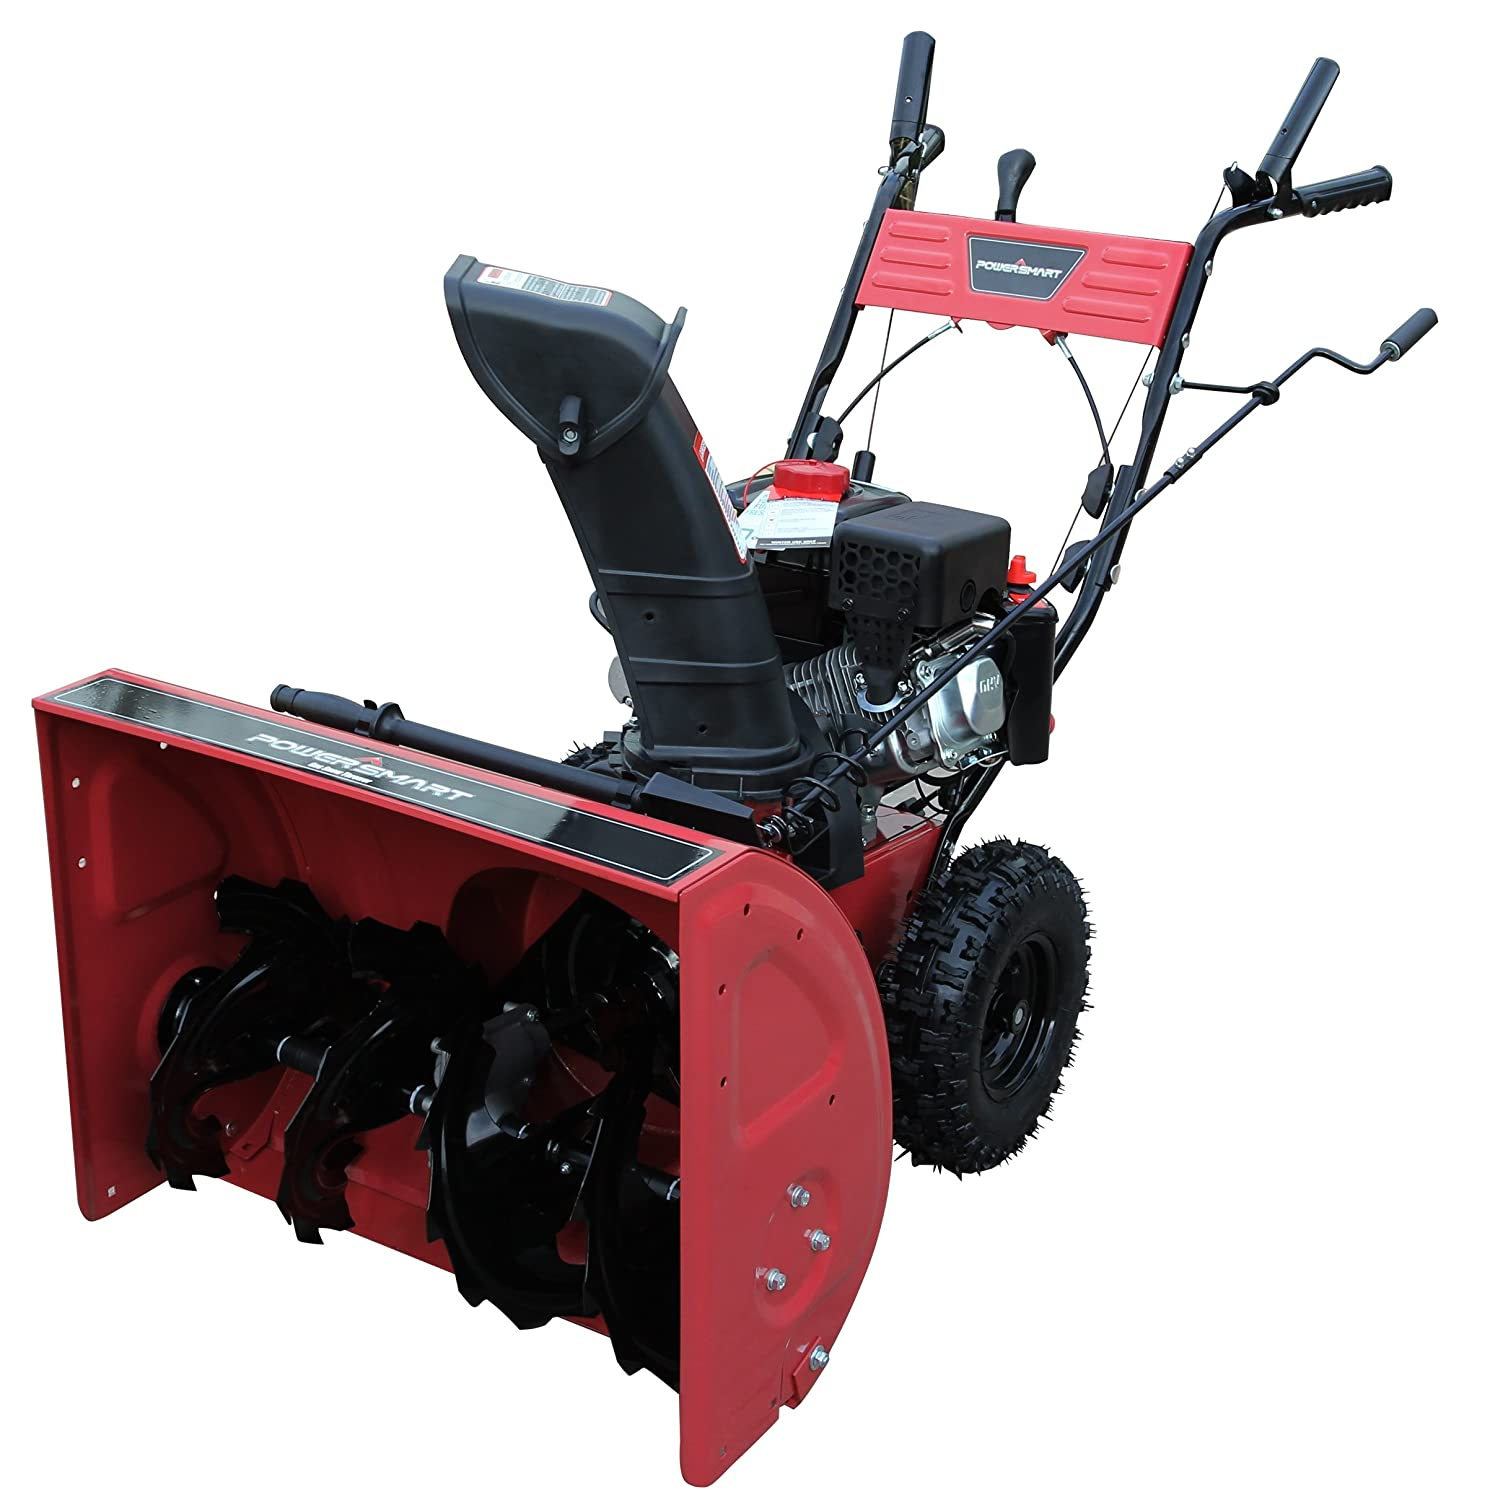 Top 10 Best Gas Snow Blower (2020 Reviews & Buying Guide) 1